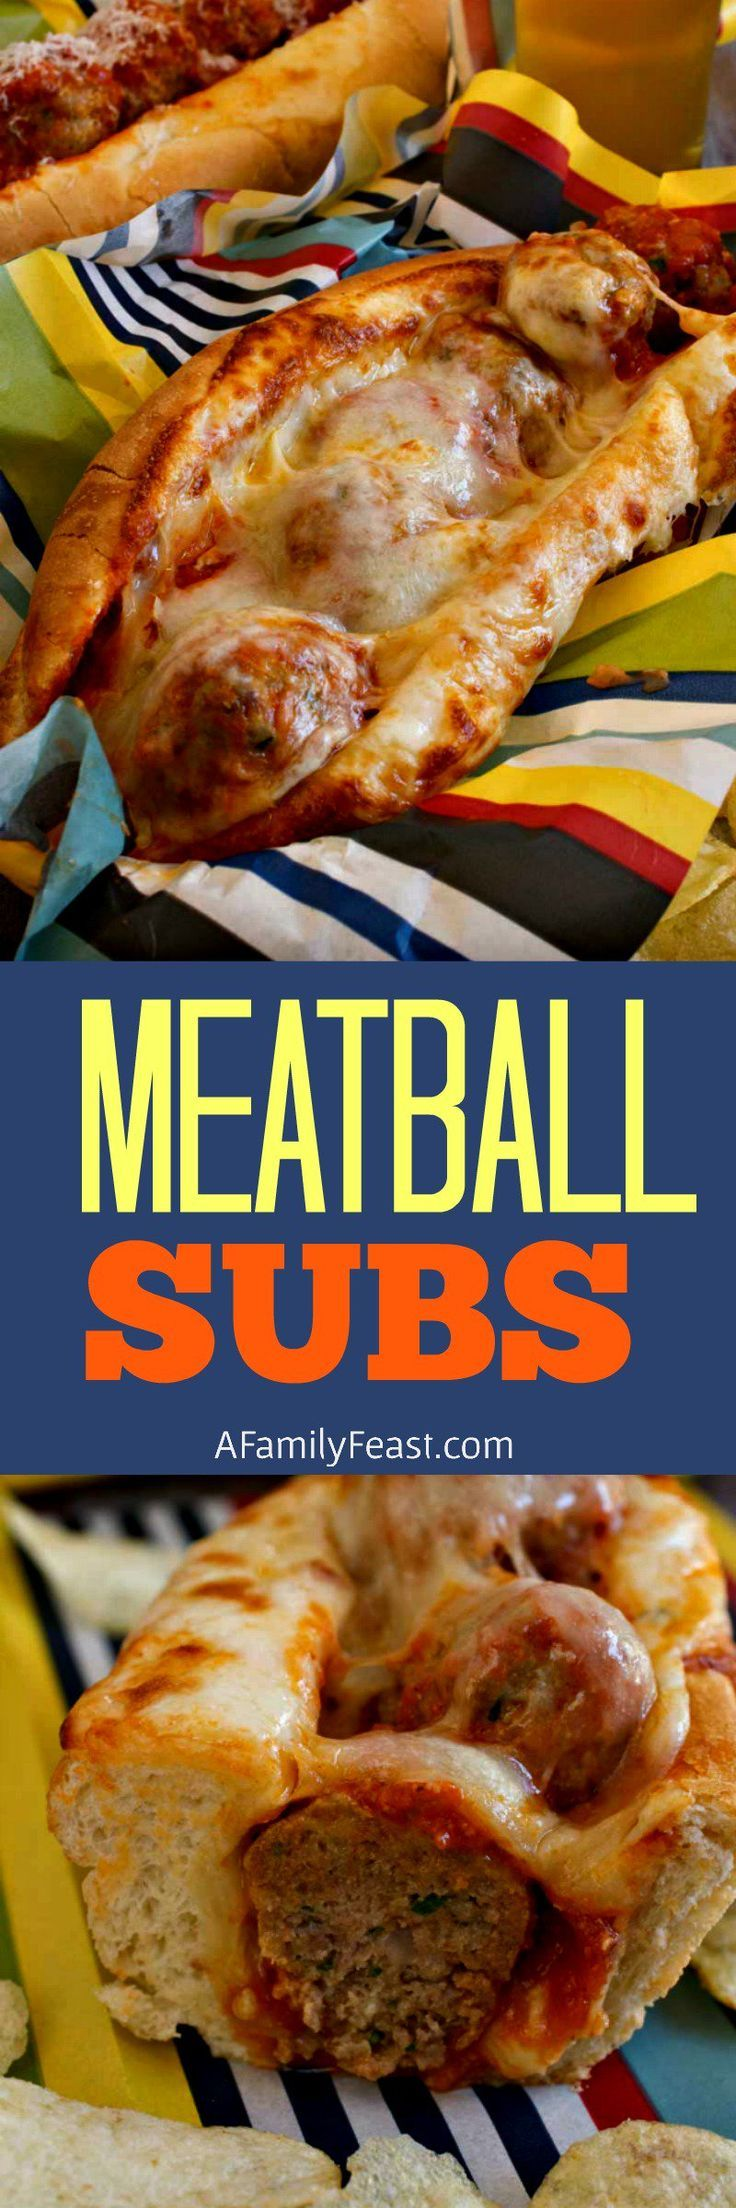 Meatball Subs are a great way to feed a hungry crowd on game day! Made with the most flavorful, tender meatballs ever, smothered in marinara sauce and cheese!